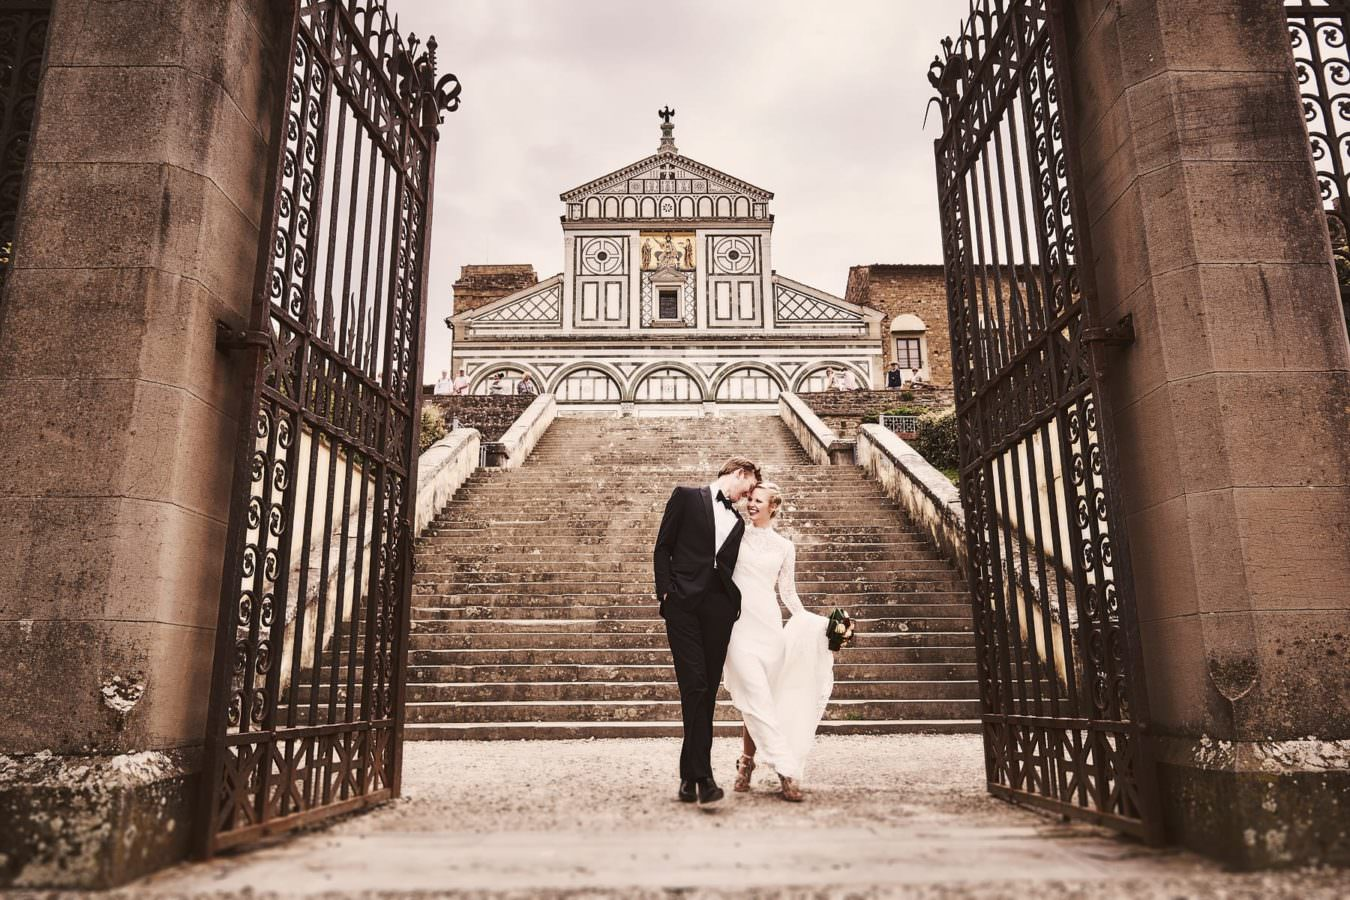 Bride and groom walk through the gate of San Miniato a Monte near Piazzale Michelangelo Florence